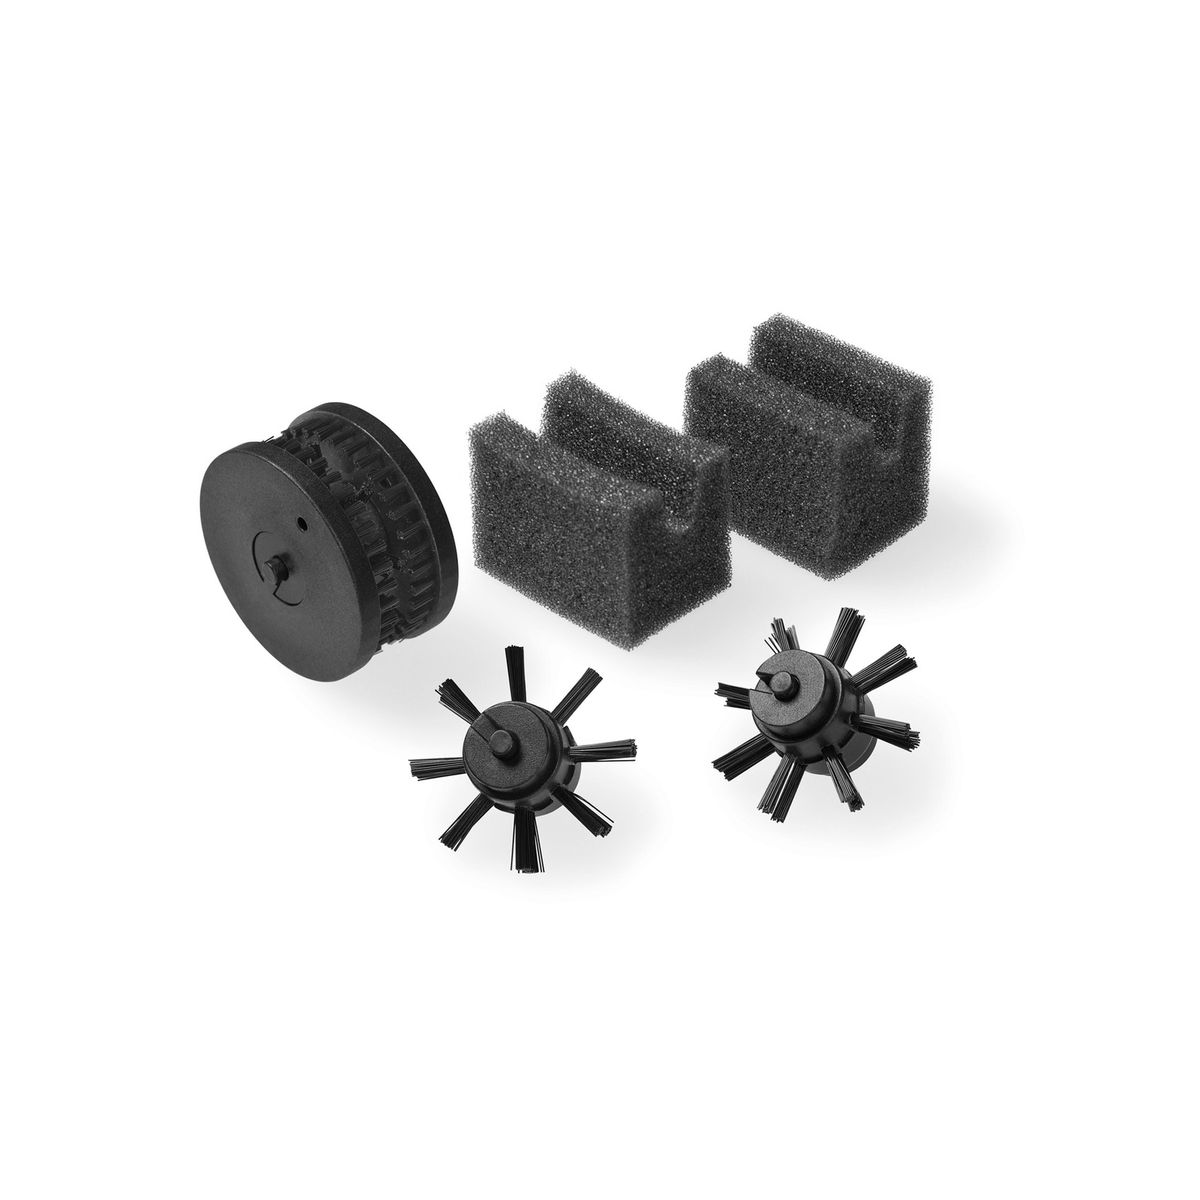 RBS-5 replacement brush set and foam blocks for CM-5.2 chain cleaner